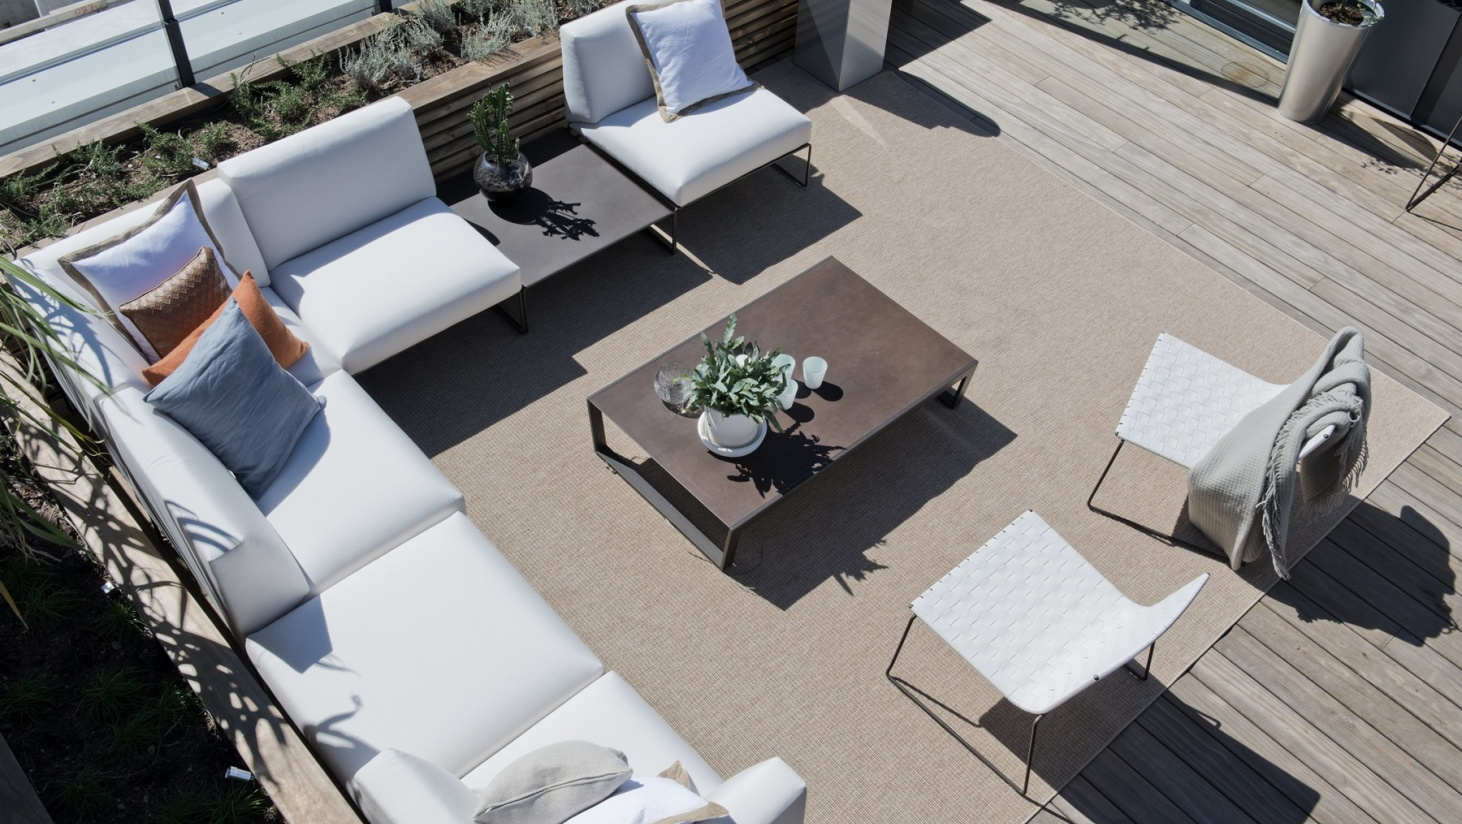 5 Green Rooftop Deck Design Ideas | | The Garden And Patio Home Guide